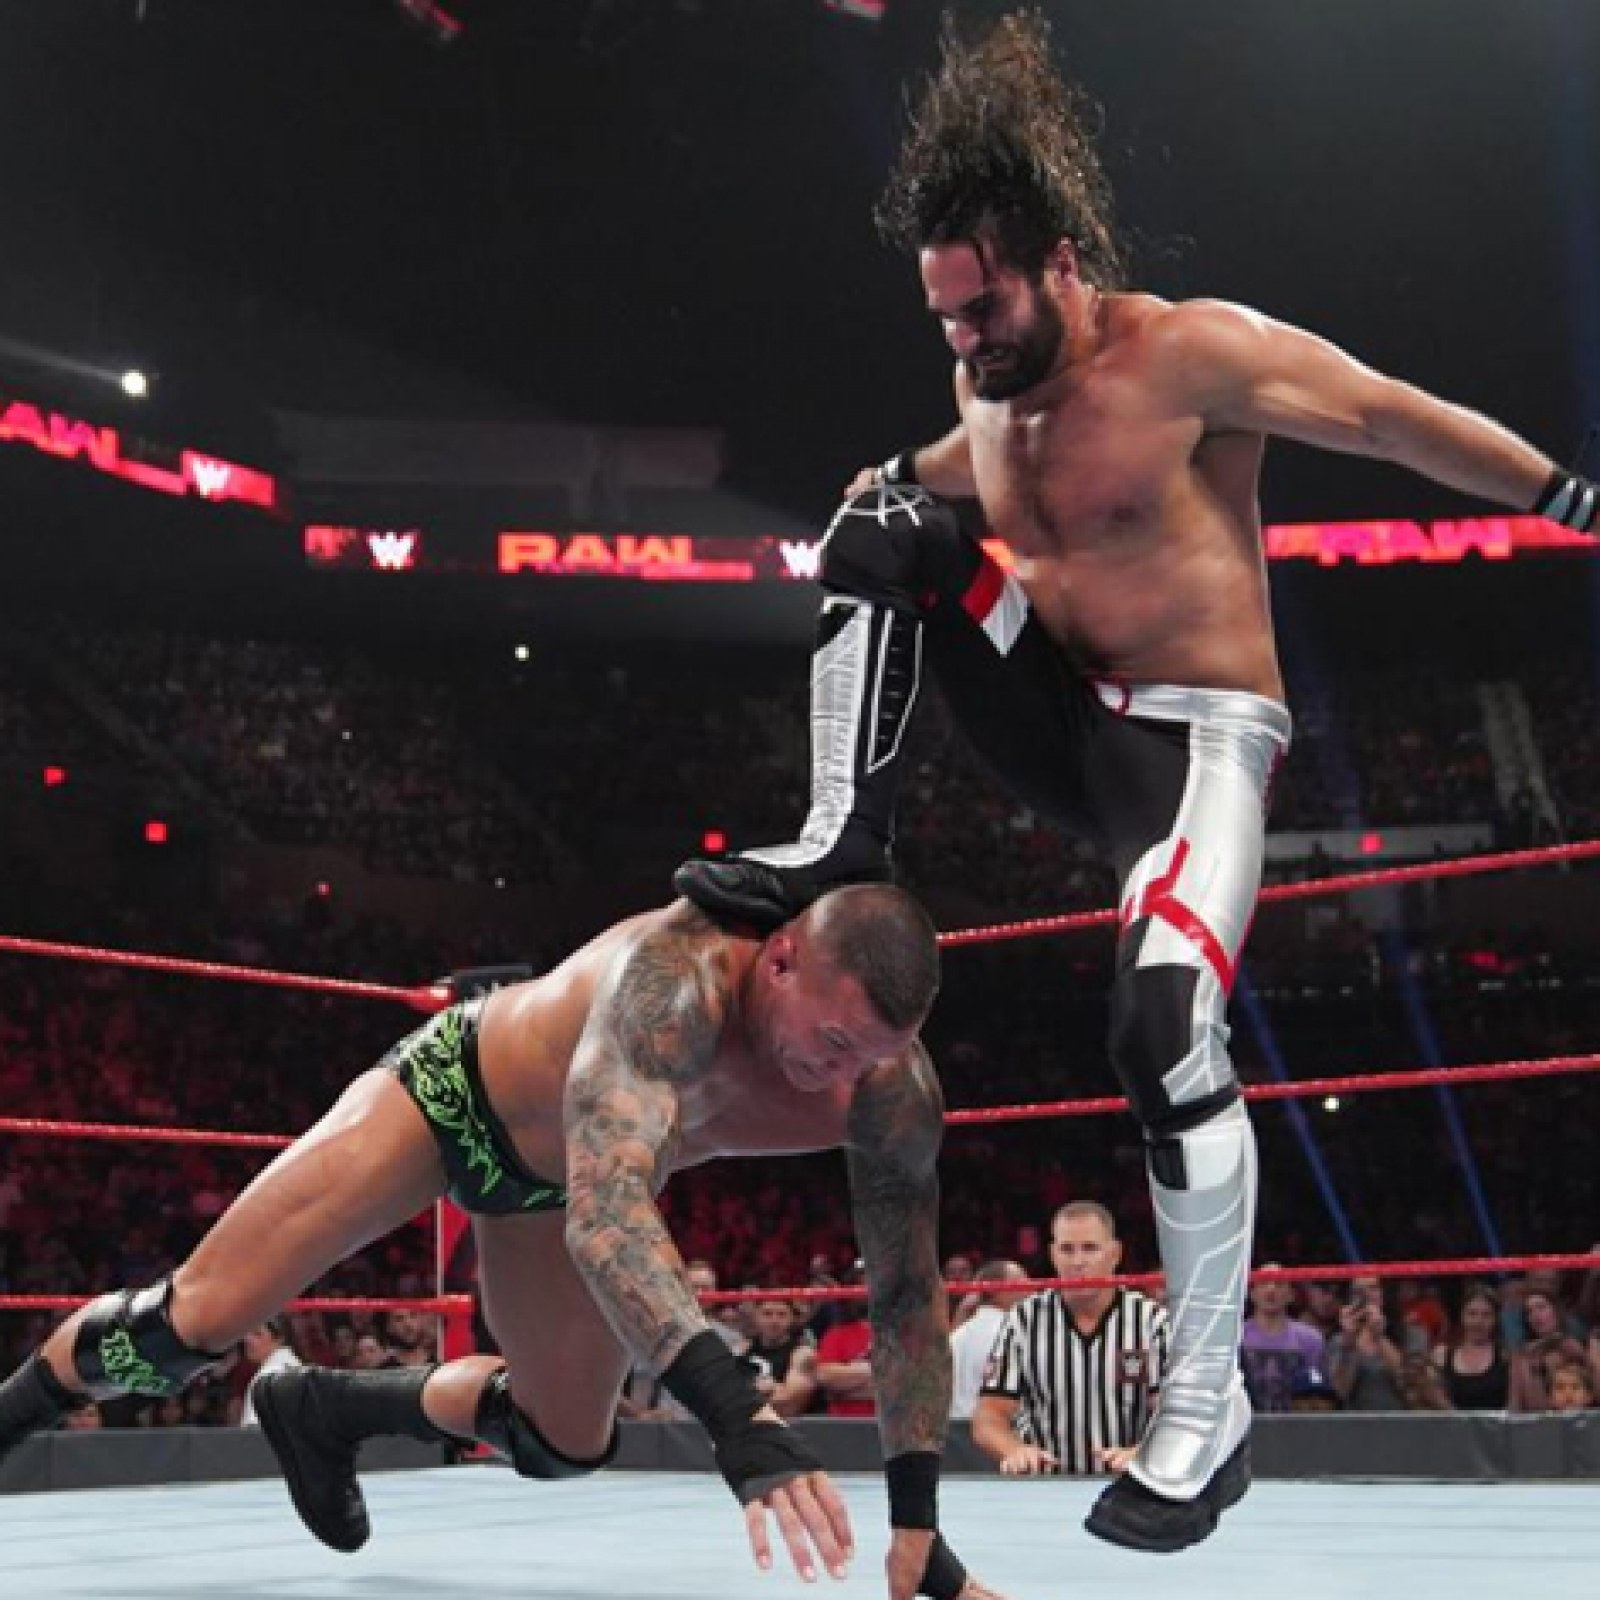 Wwe raw results archive